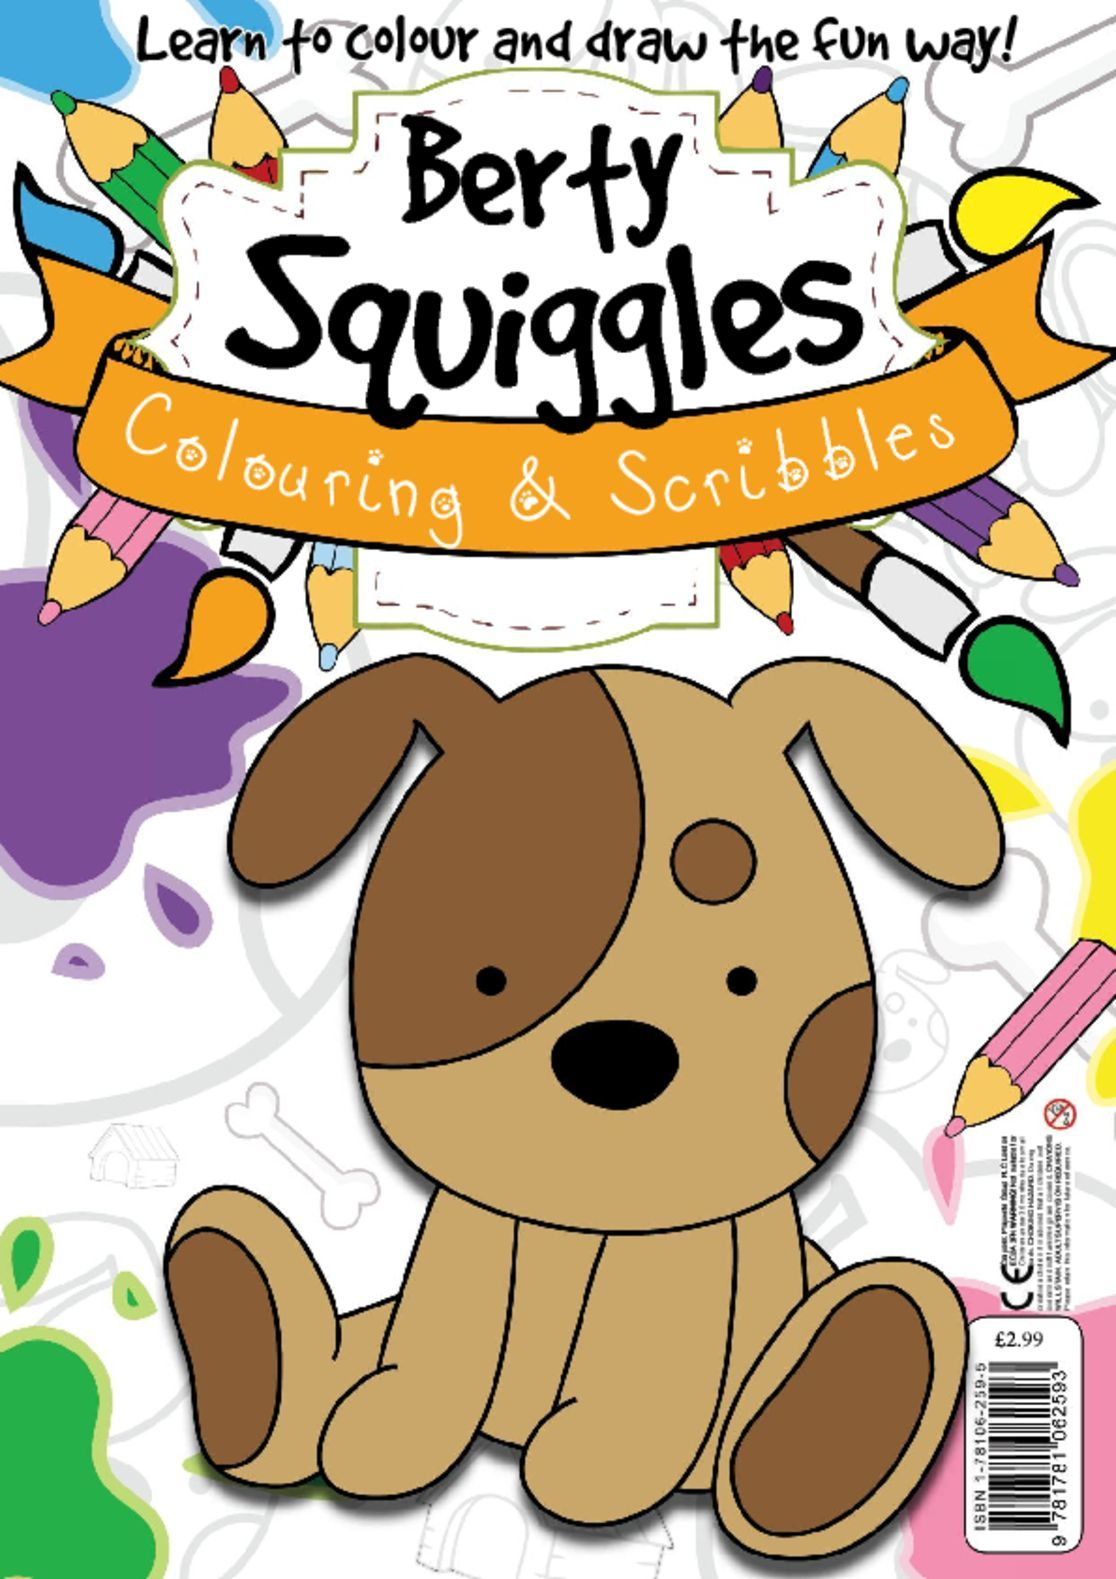 Berty Squiggles Colouring Scribbles Digital